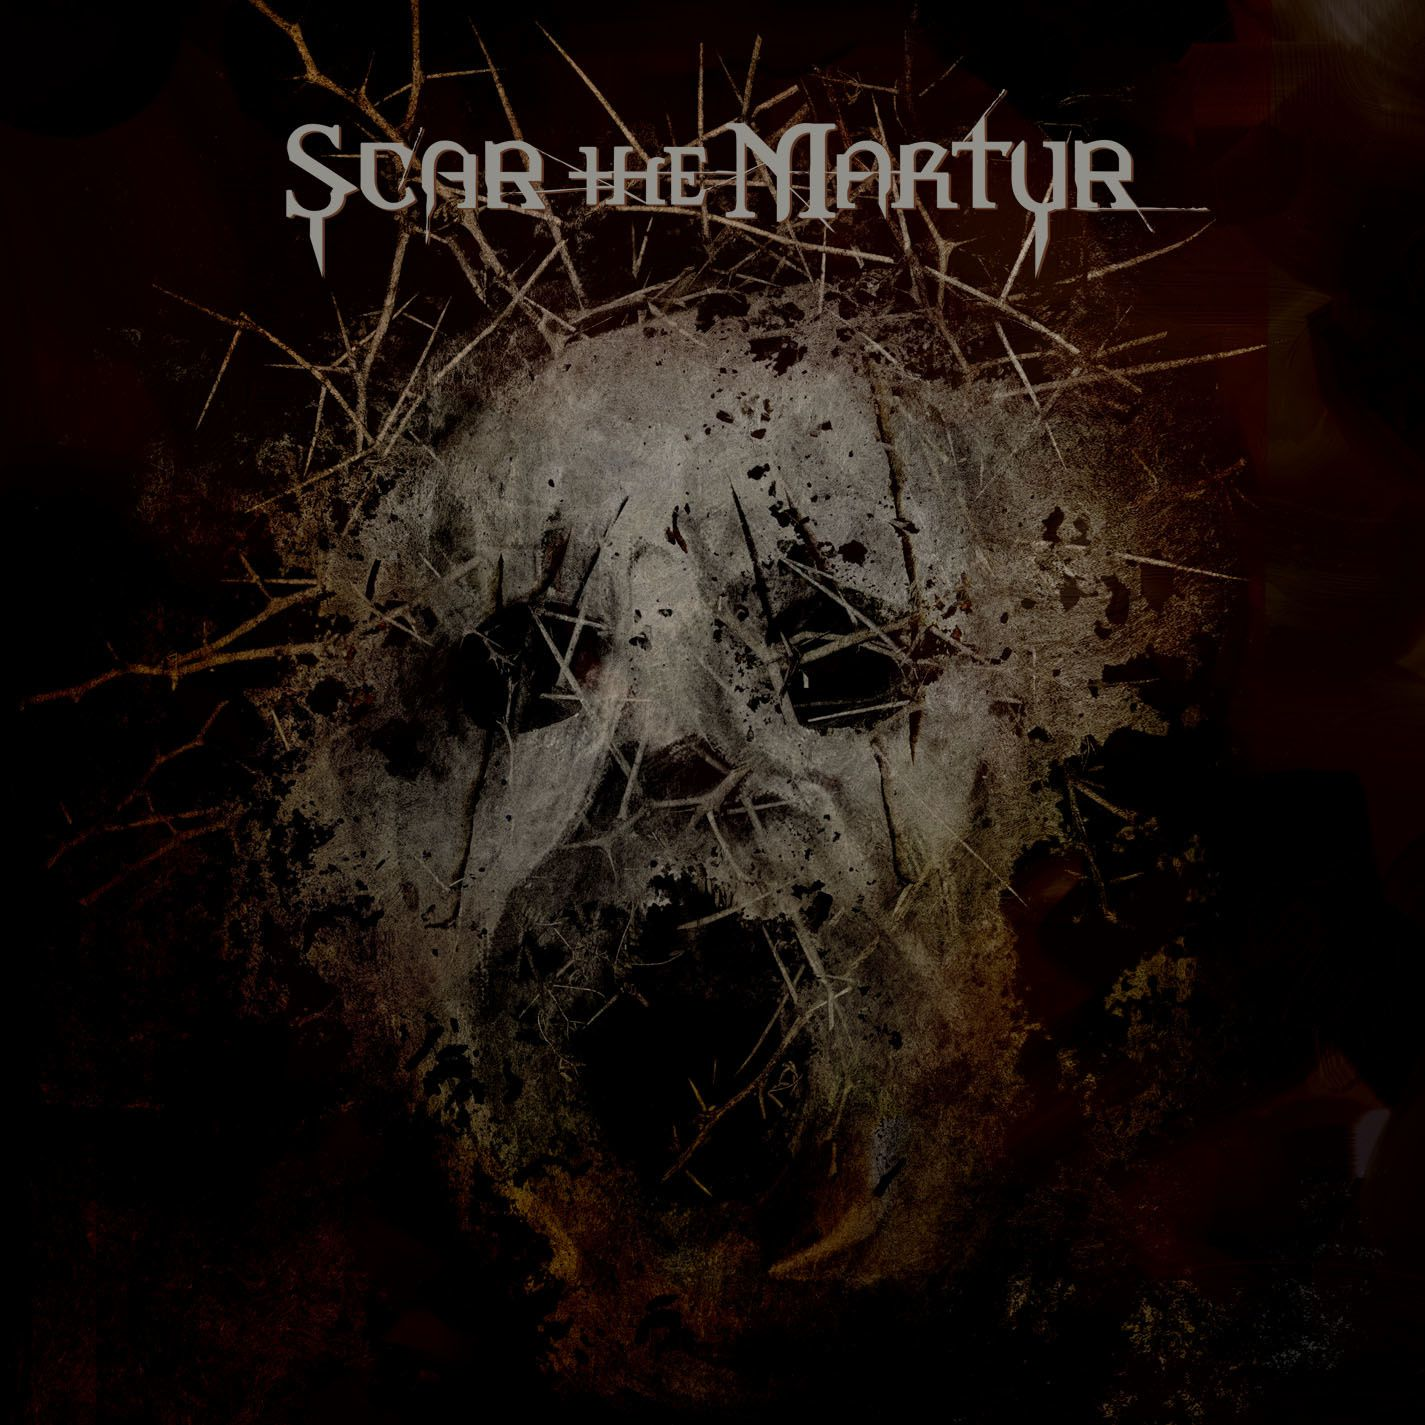 scar the martyr - Markus' Heavy Music Blog